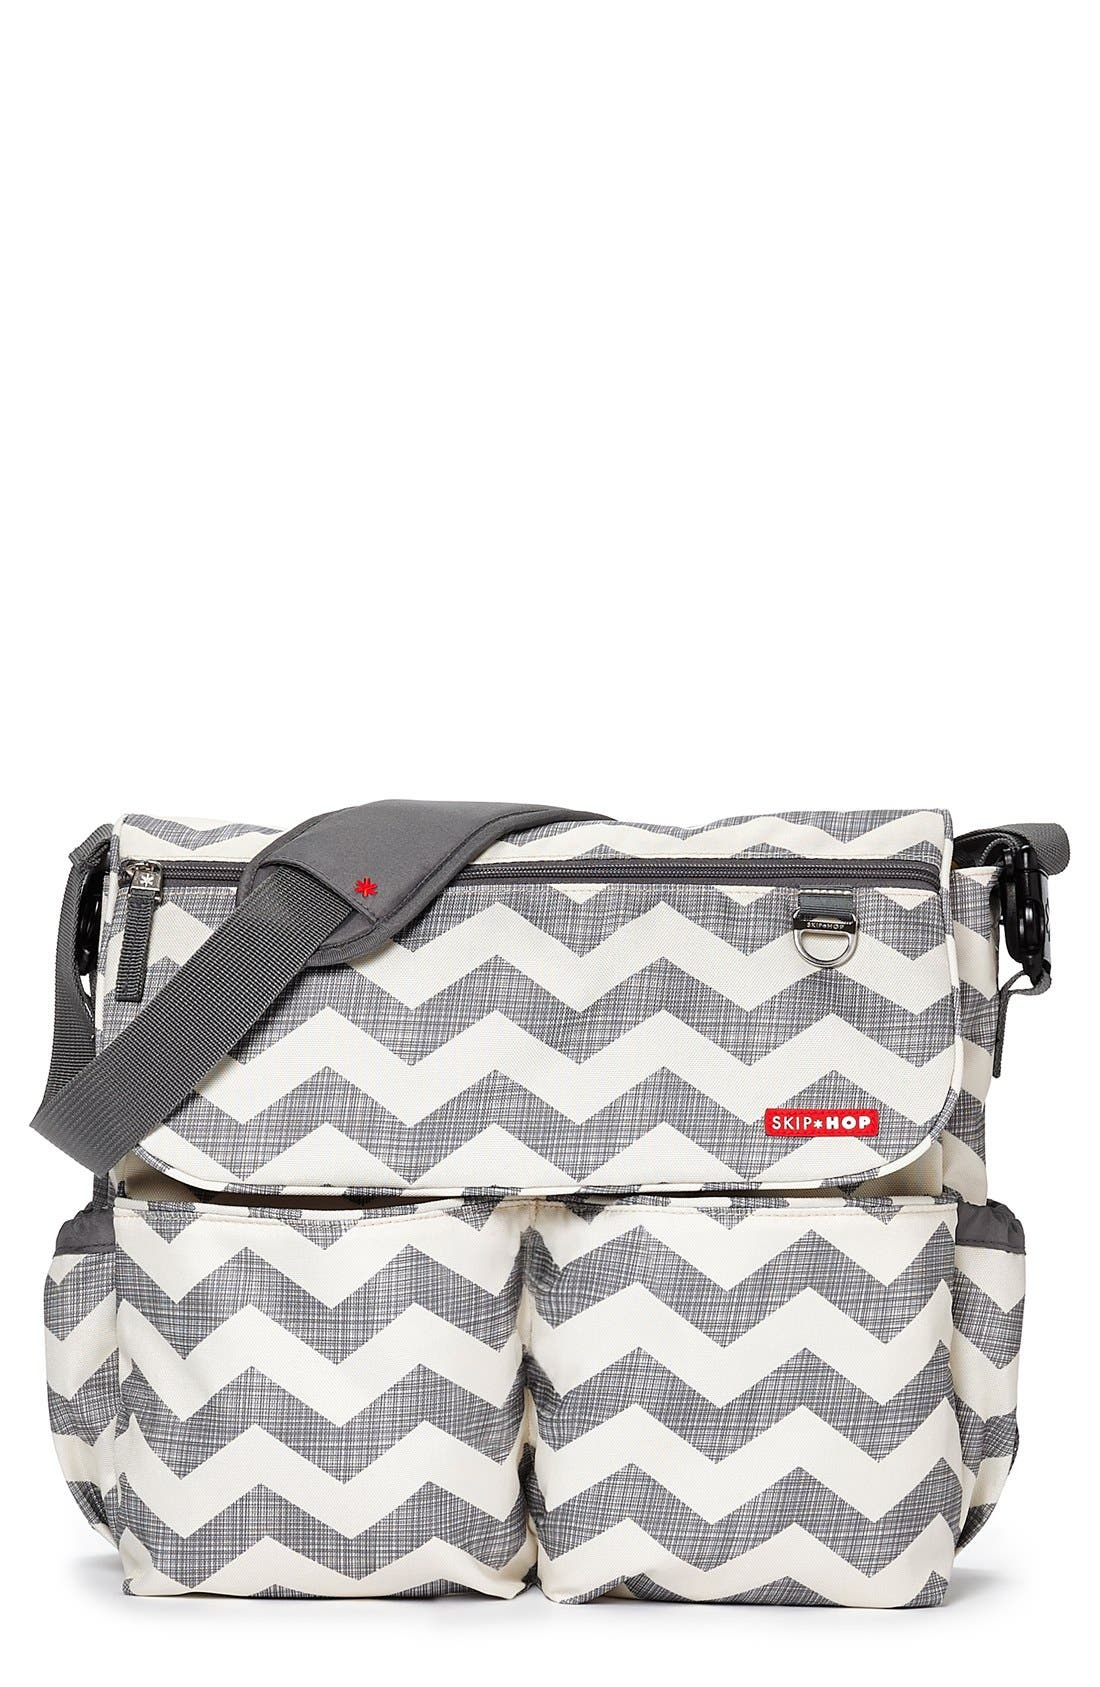 Main Image - Skip Hop 'Dash Signature' Messenger Diaper Bag